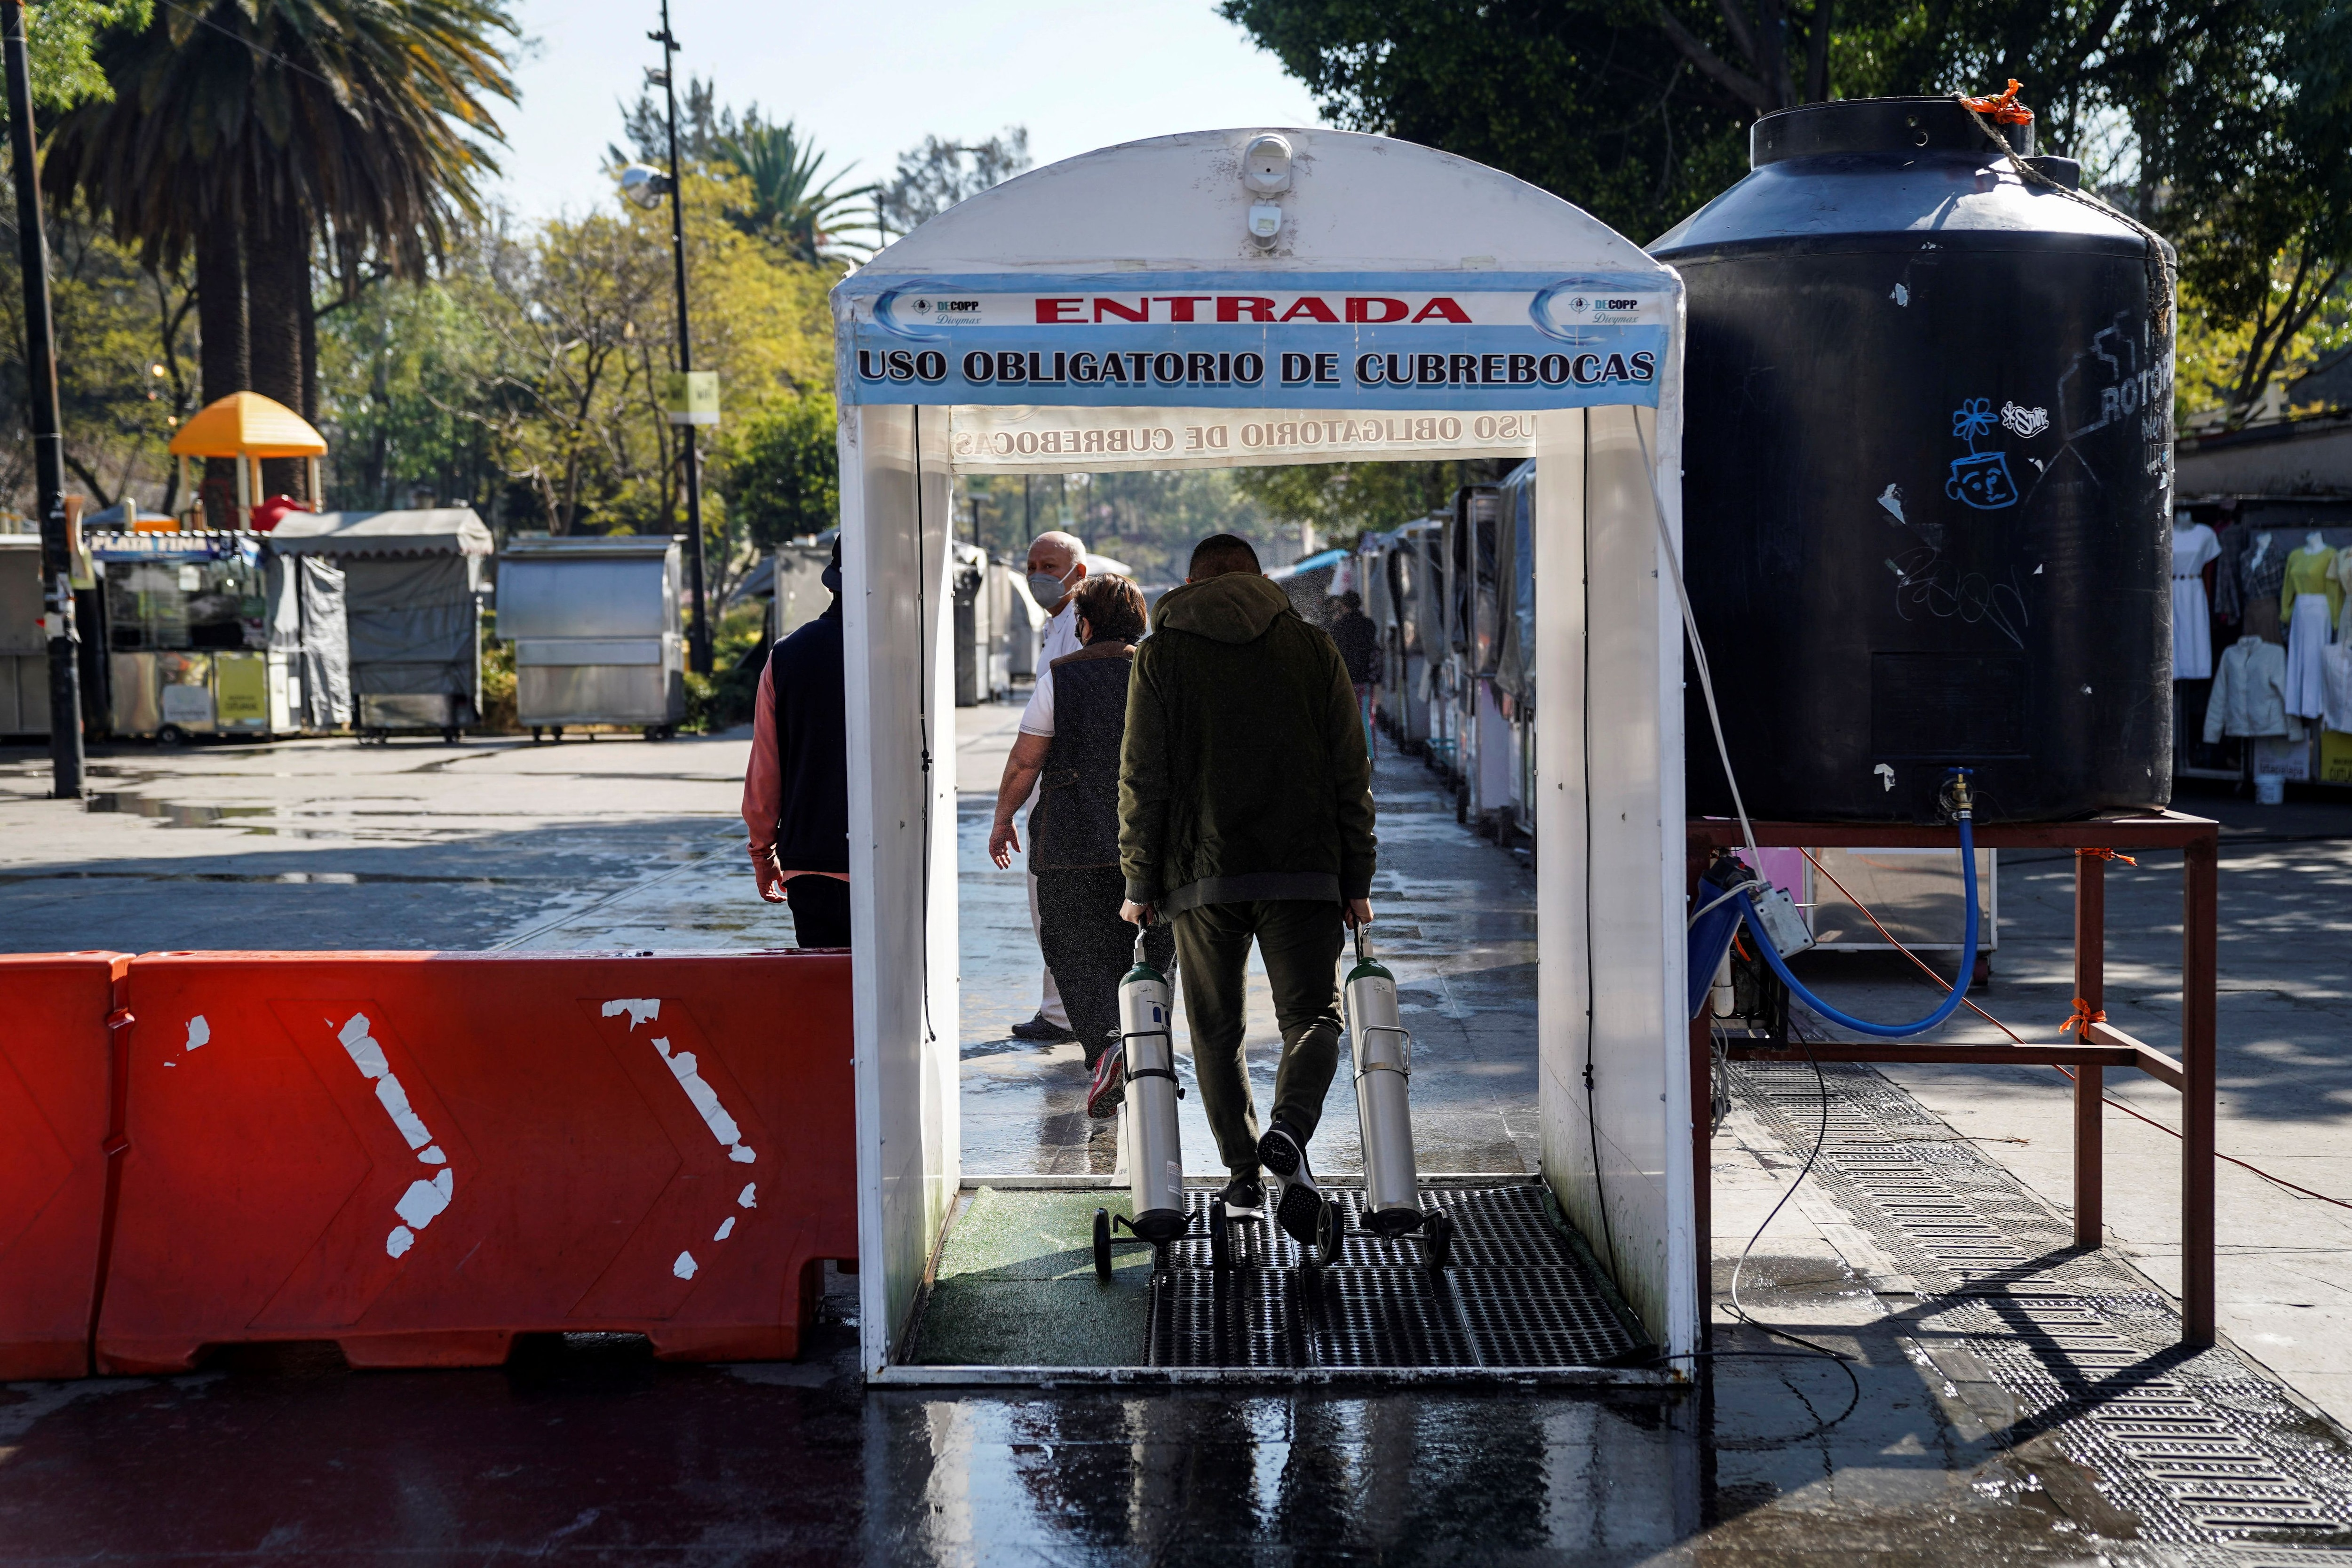 A man walks through a disinfection chamber while carrying oxygen tanks for his relatives infected with the coronavirus disease, as part of a city government's free recharge program, in the municipality of Iztapalapa, in Mexico City, Mexico 18 January 2021.